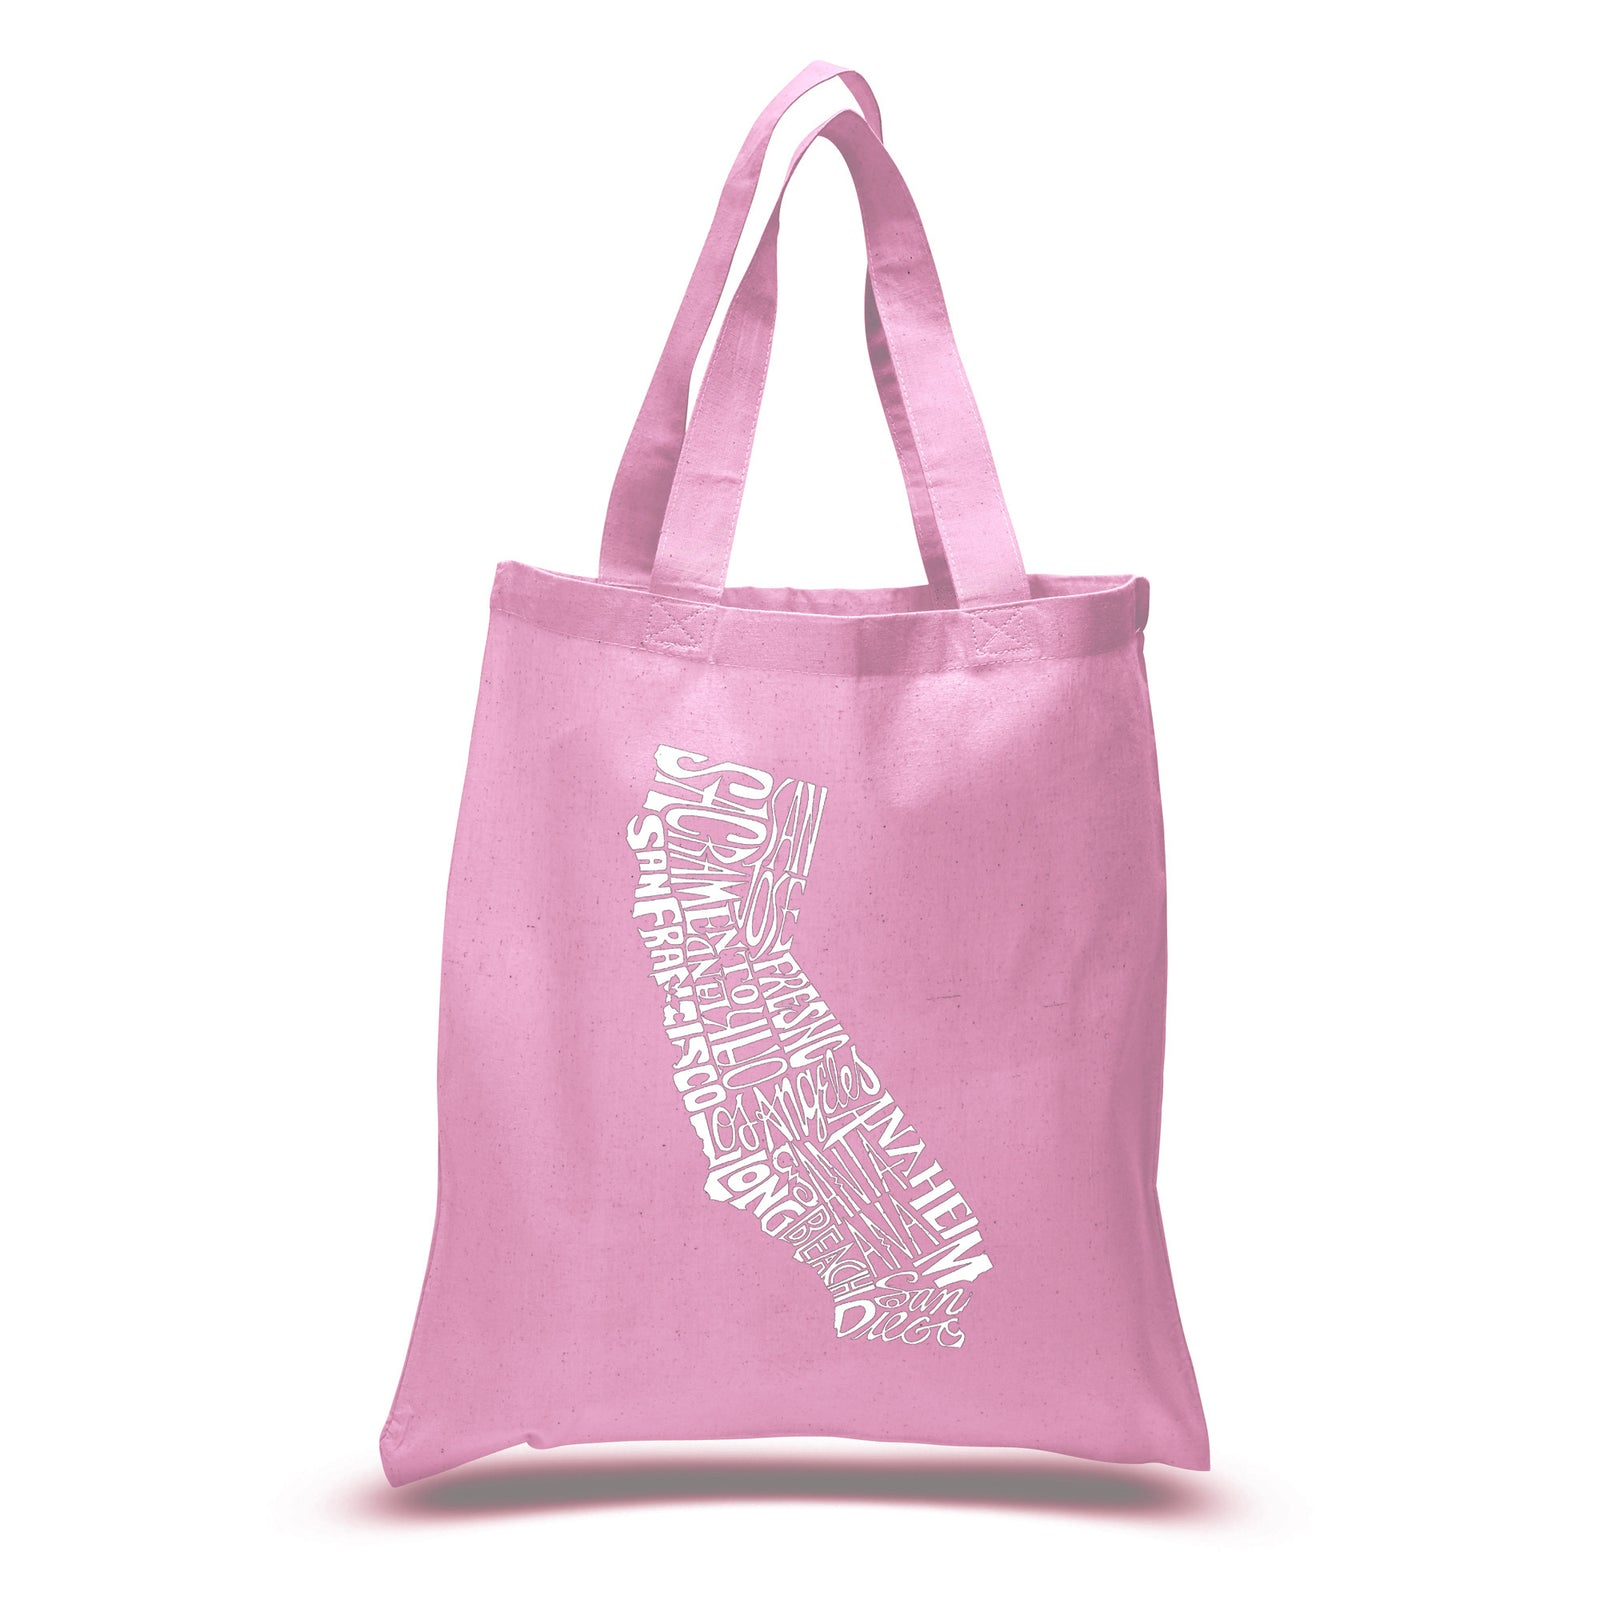 Los Angeles Pop Art Small Tote Bag - California State